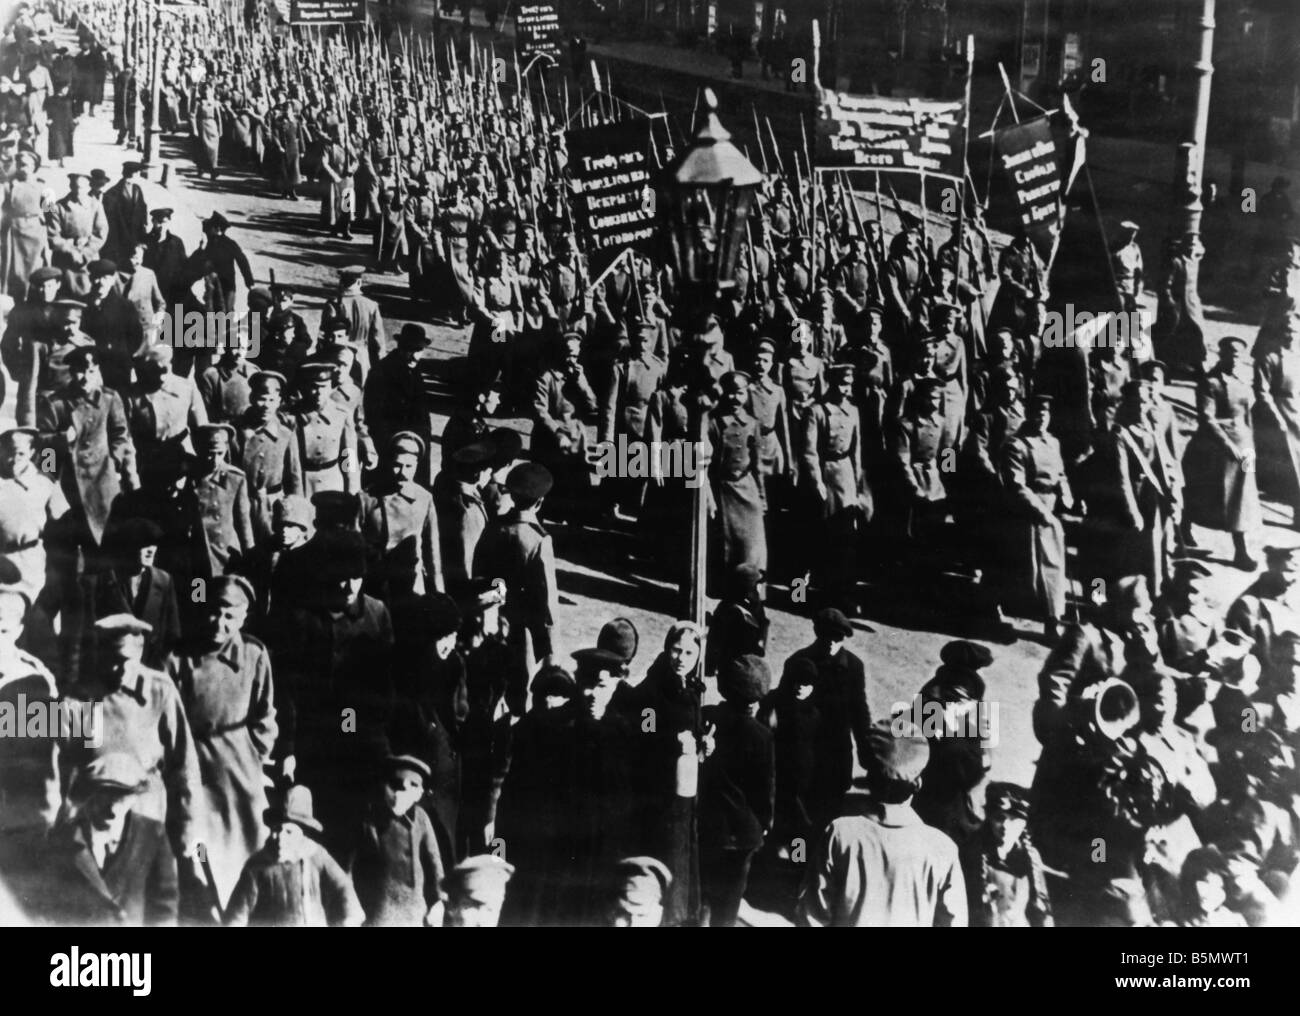 9RD 1917 4 0 A1 Revolution 1917 Demonstrating soldiers Russian Revolution 1917 Demonstration by revolutionary forces - Stock Image